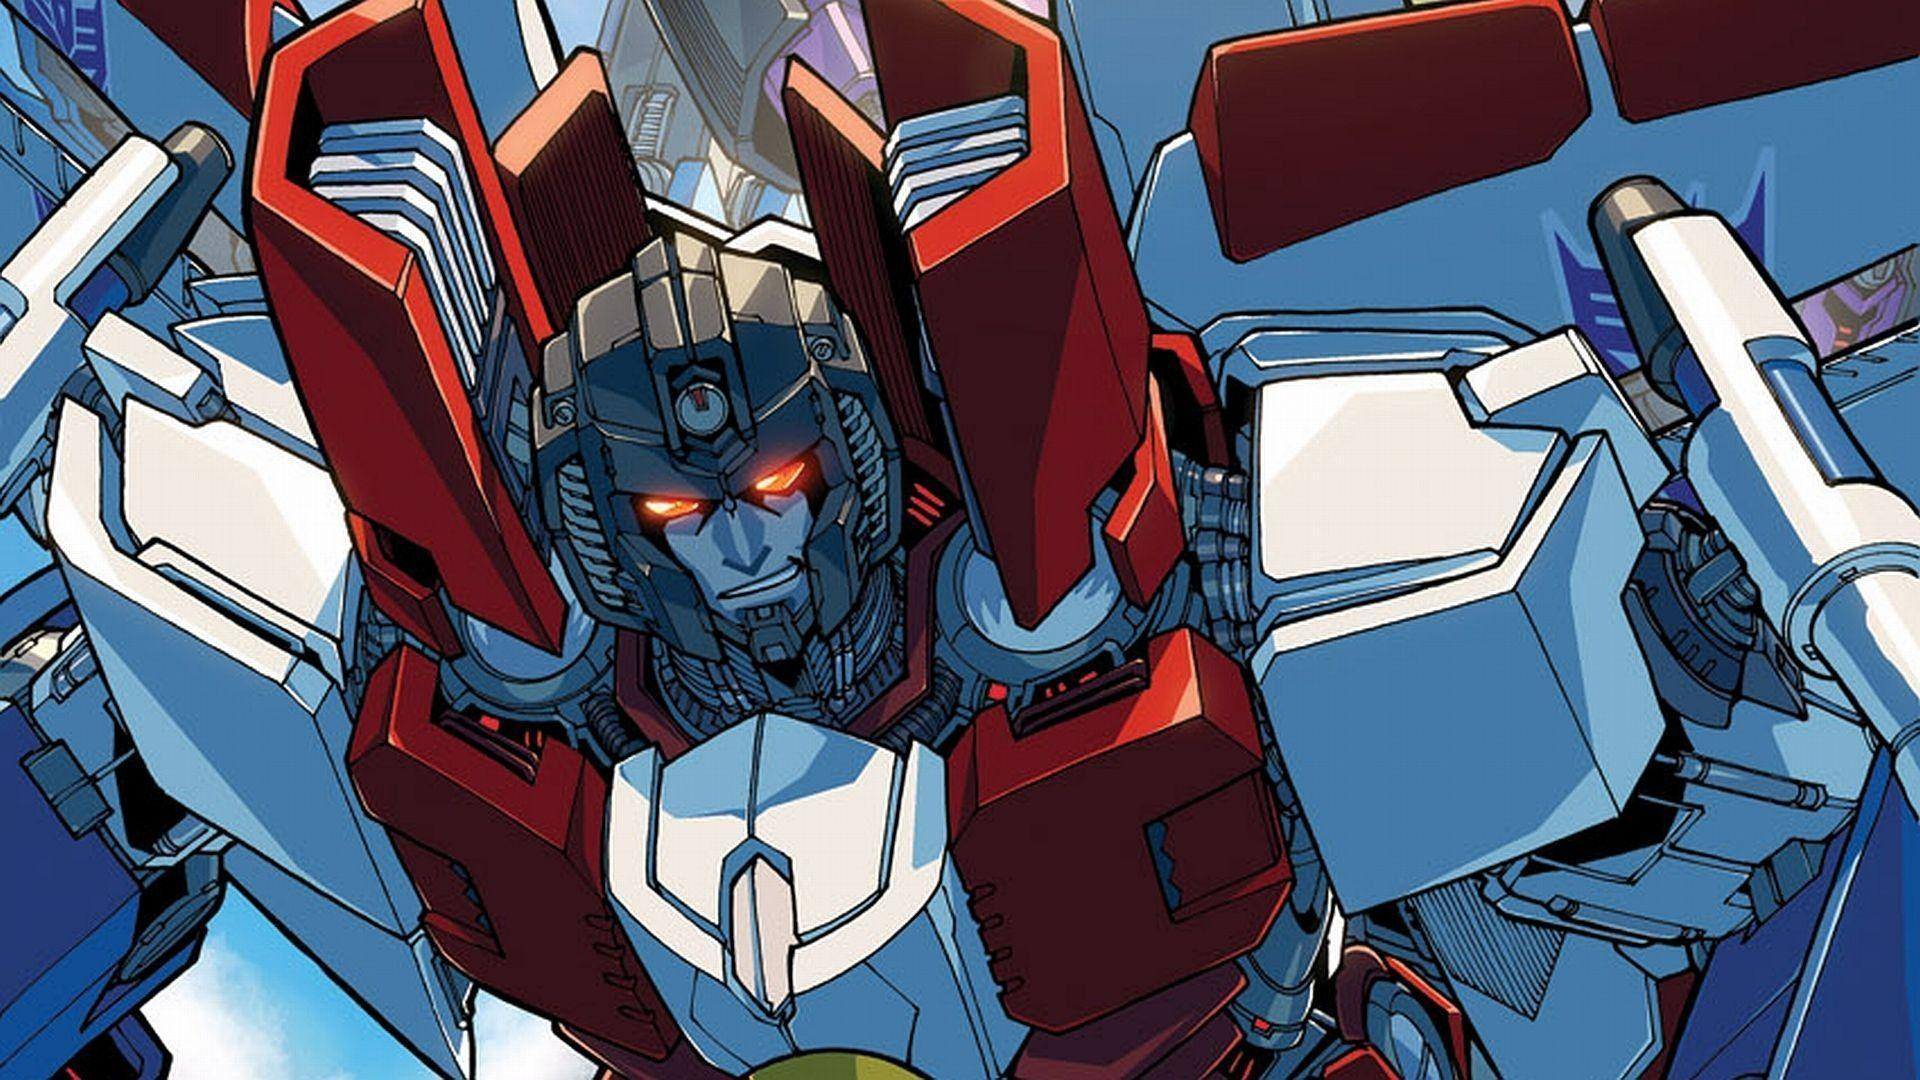 Image For > Starscream Wallpapers